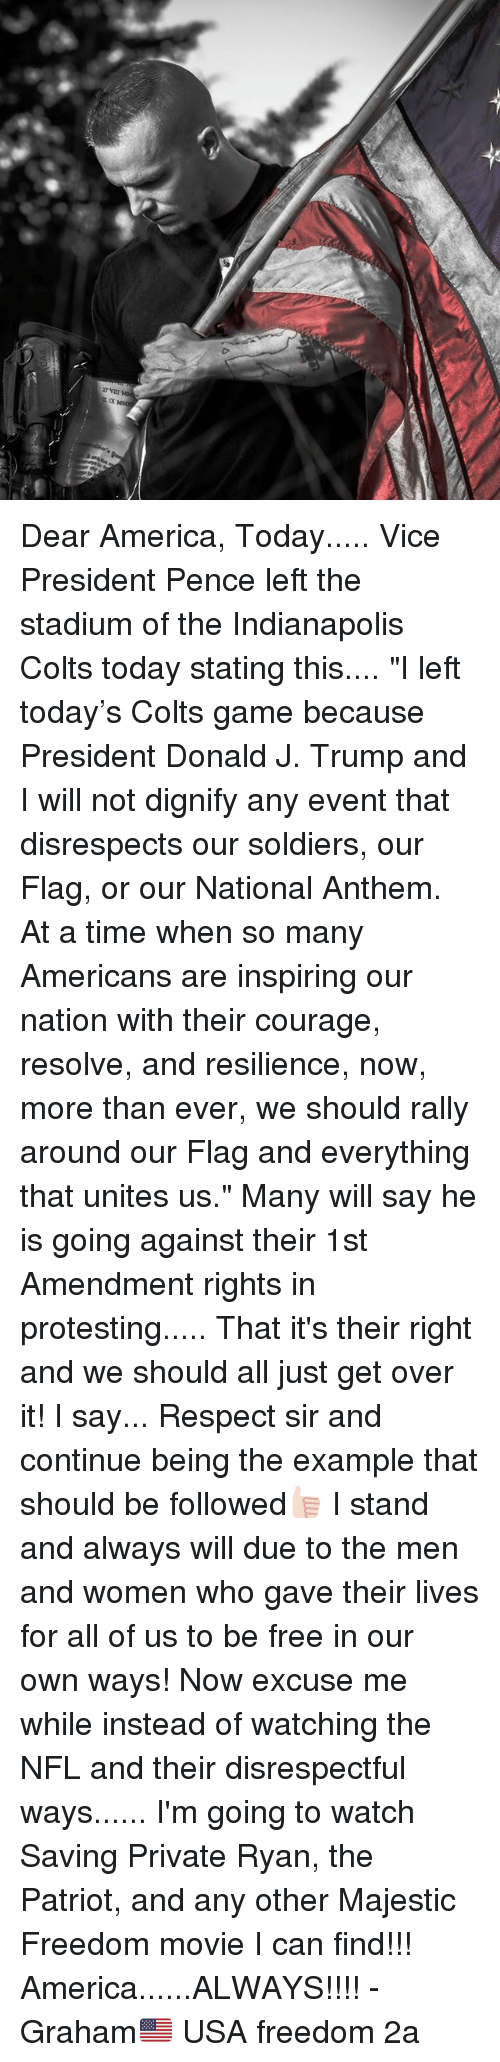 """resilience: Dear America, Today..... Vice President Pence left the stadium of the Indianapolis Colts today stating this.... """"I left today's Colts game because President Donald J. Trump and I will not dignify any event that disrespects our soldiers, our Flag, or our National Anthem. At a time when so many Americans are inspiring our nation with their courage, resolve, and resilience, now, more than ever, we should rally around our Flag and everything that unites us."""" Many will say he is going against their 1st Amendment rights in protesting..... That it's their right and we should all just get over it! I say... Respect sir and continue being the example that should be followed👍🏻 I stand and always will due to the men and women who gave their lives for all of us to be free in our own ways! Now excuse me while instead of watching the NFL and their disrespectful ways...... I'm going to watch Saving Private Ryan, the Patriot, and any other Majestic Freedom movie I can find!!! America......ALWAYS!!!! -Graham🇺🇸 USA freedom 2a"""